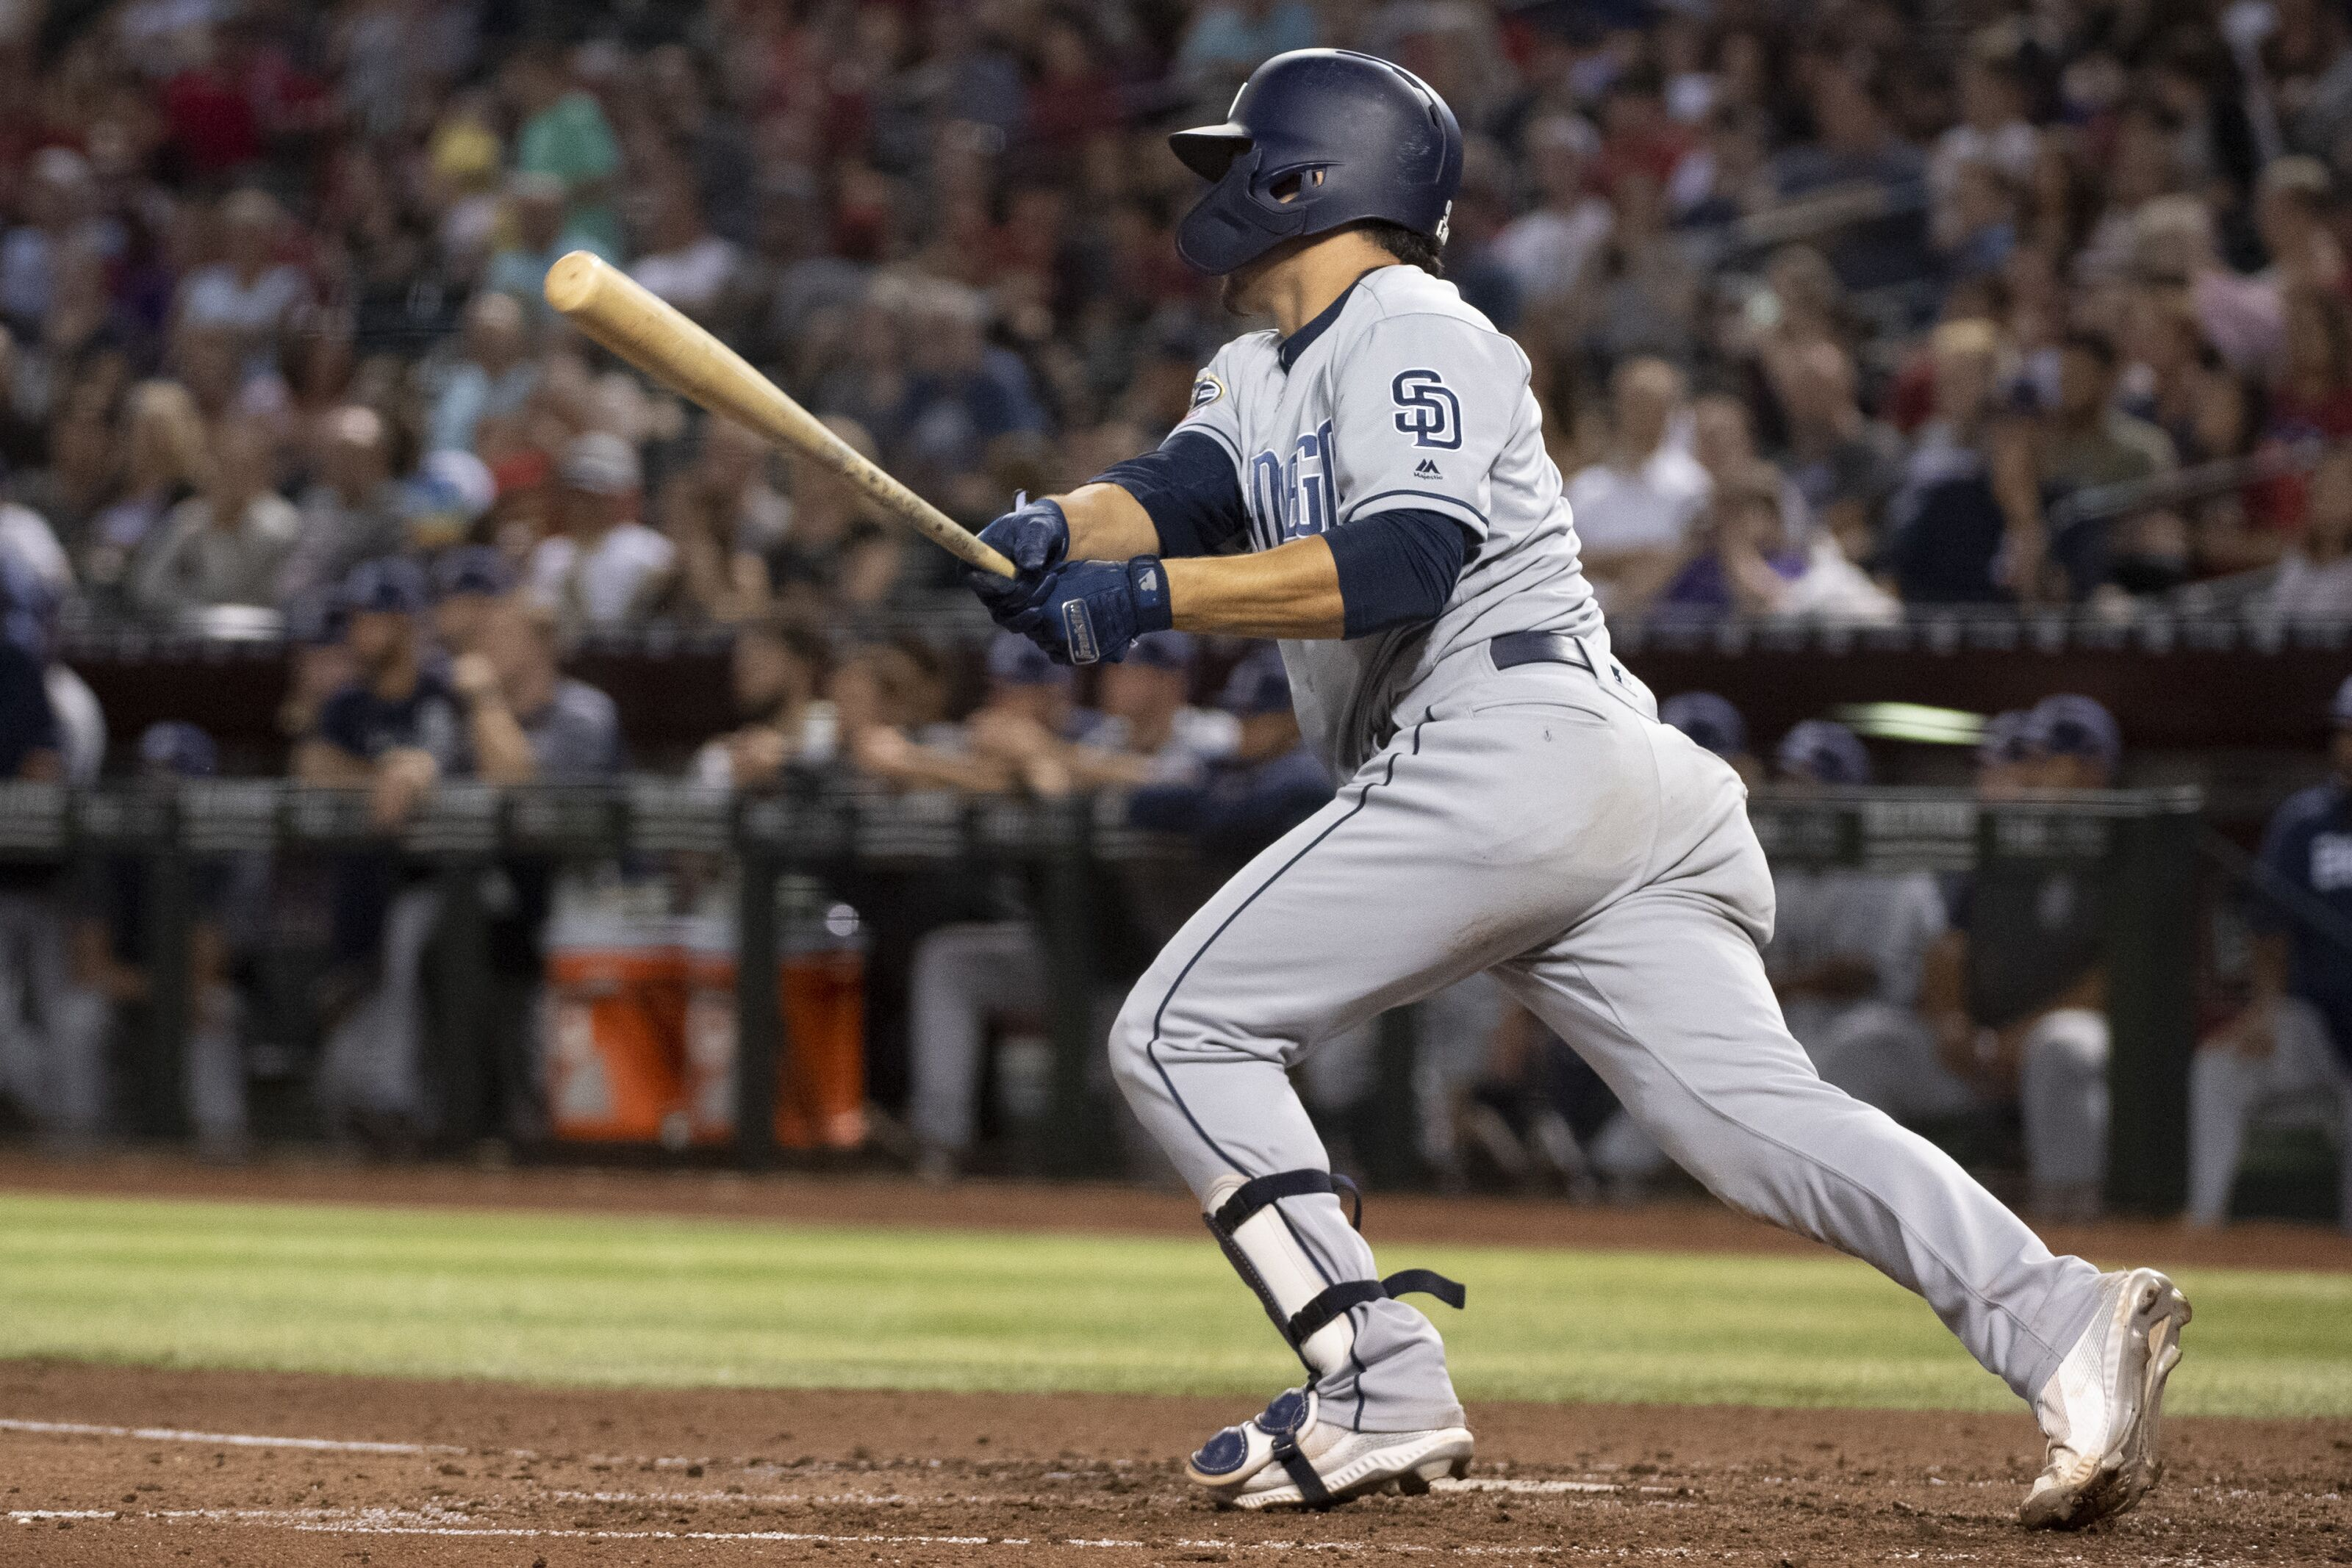 Will Luis Urias make the Brewers Opening Day roster?